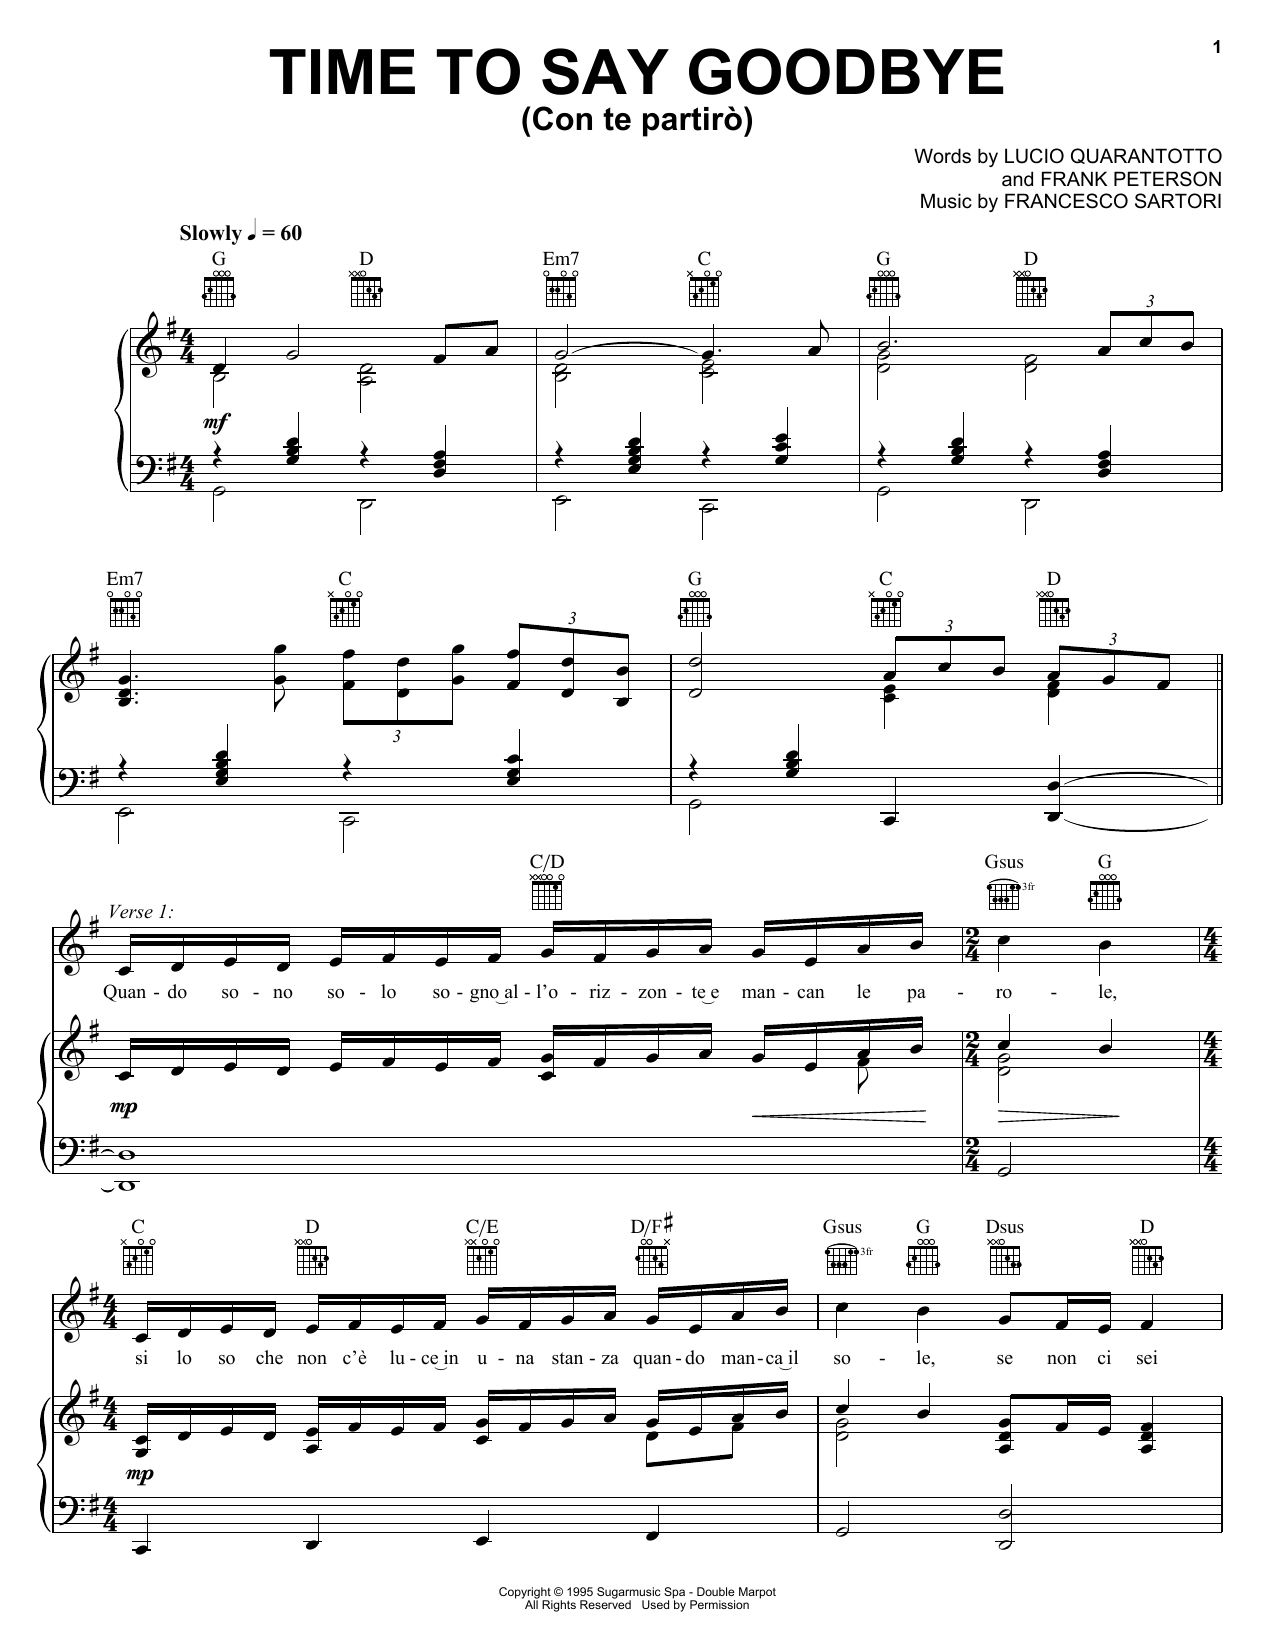 Andrea Bocelli & Sarah Brightman Time To Say Goodbye sheet music notes and chords. Download Printable PDF.